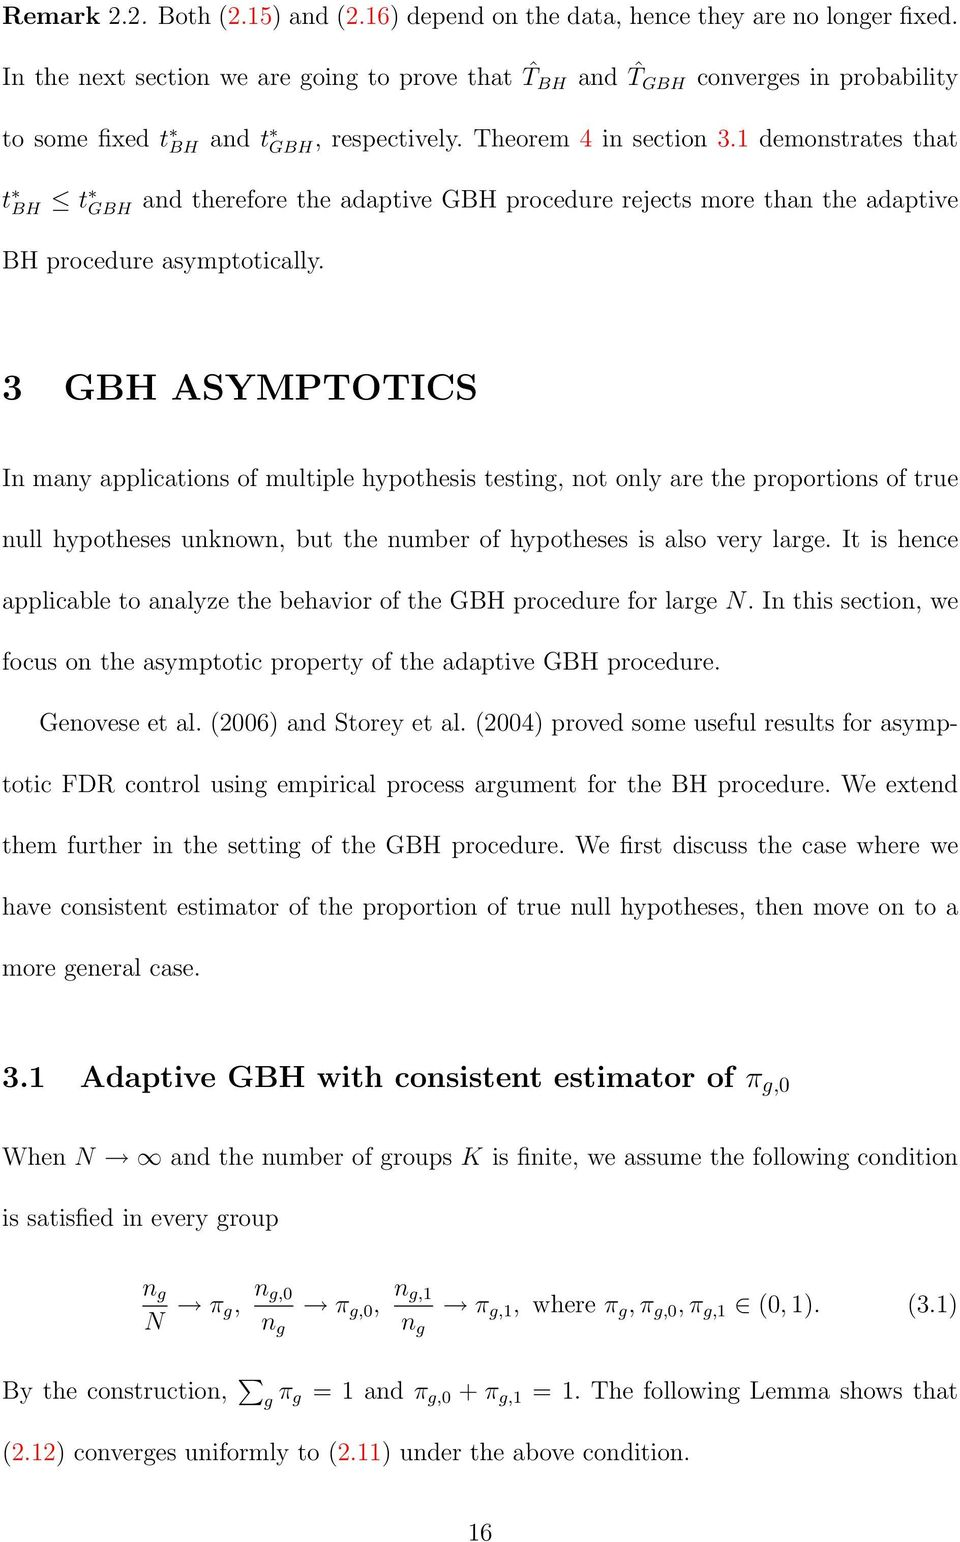 1 demonstrates that t BH t GBH and therefore the adaptive GBH procedure rejects more than the adaptive BH procedure asymptotically.